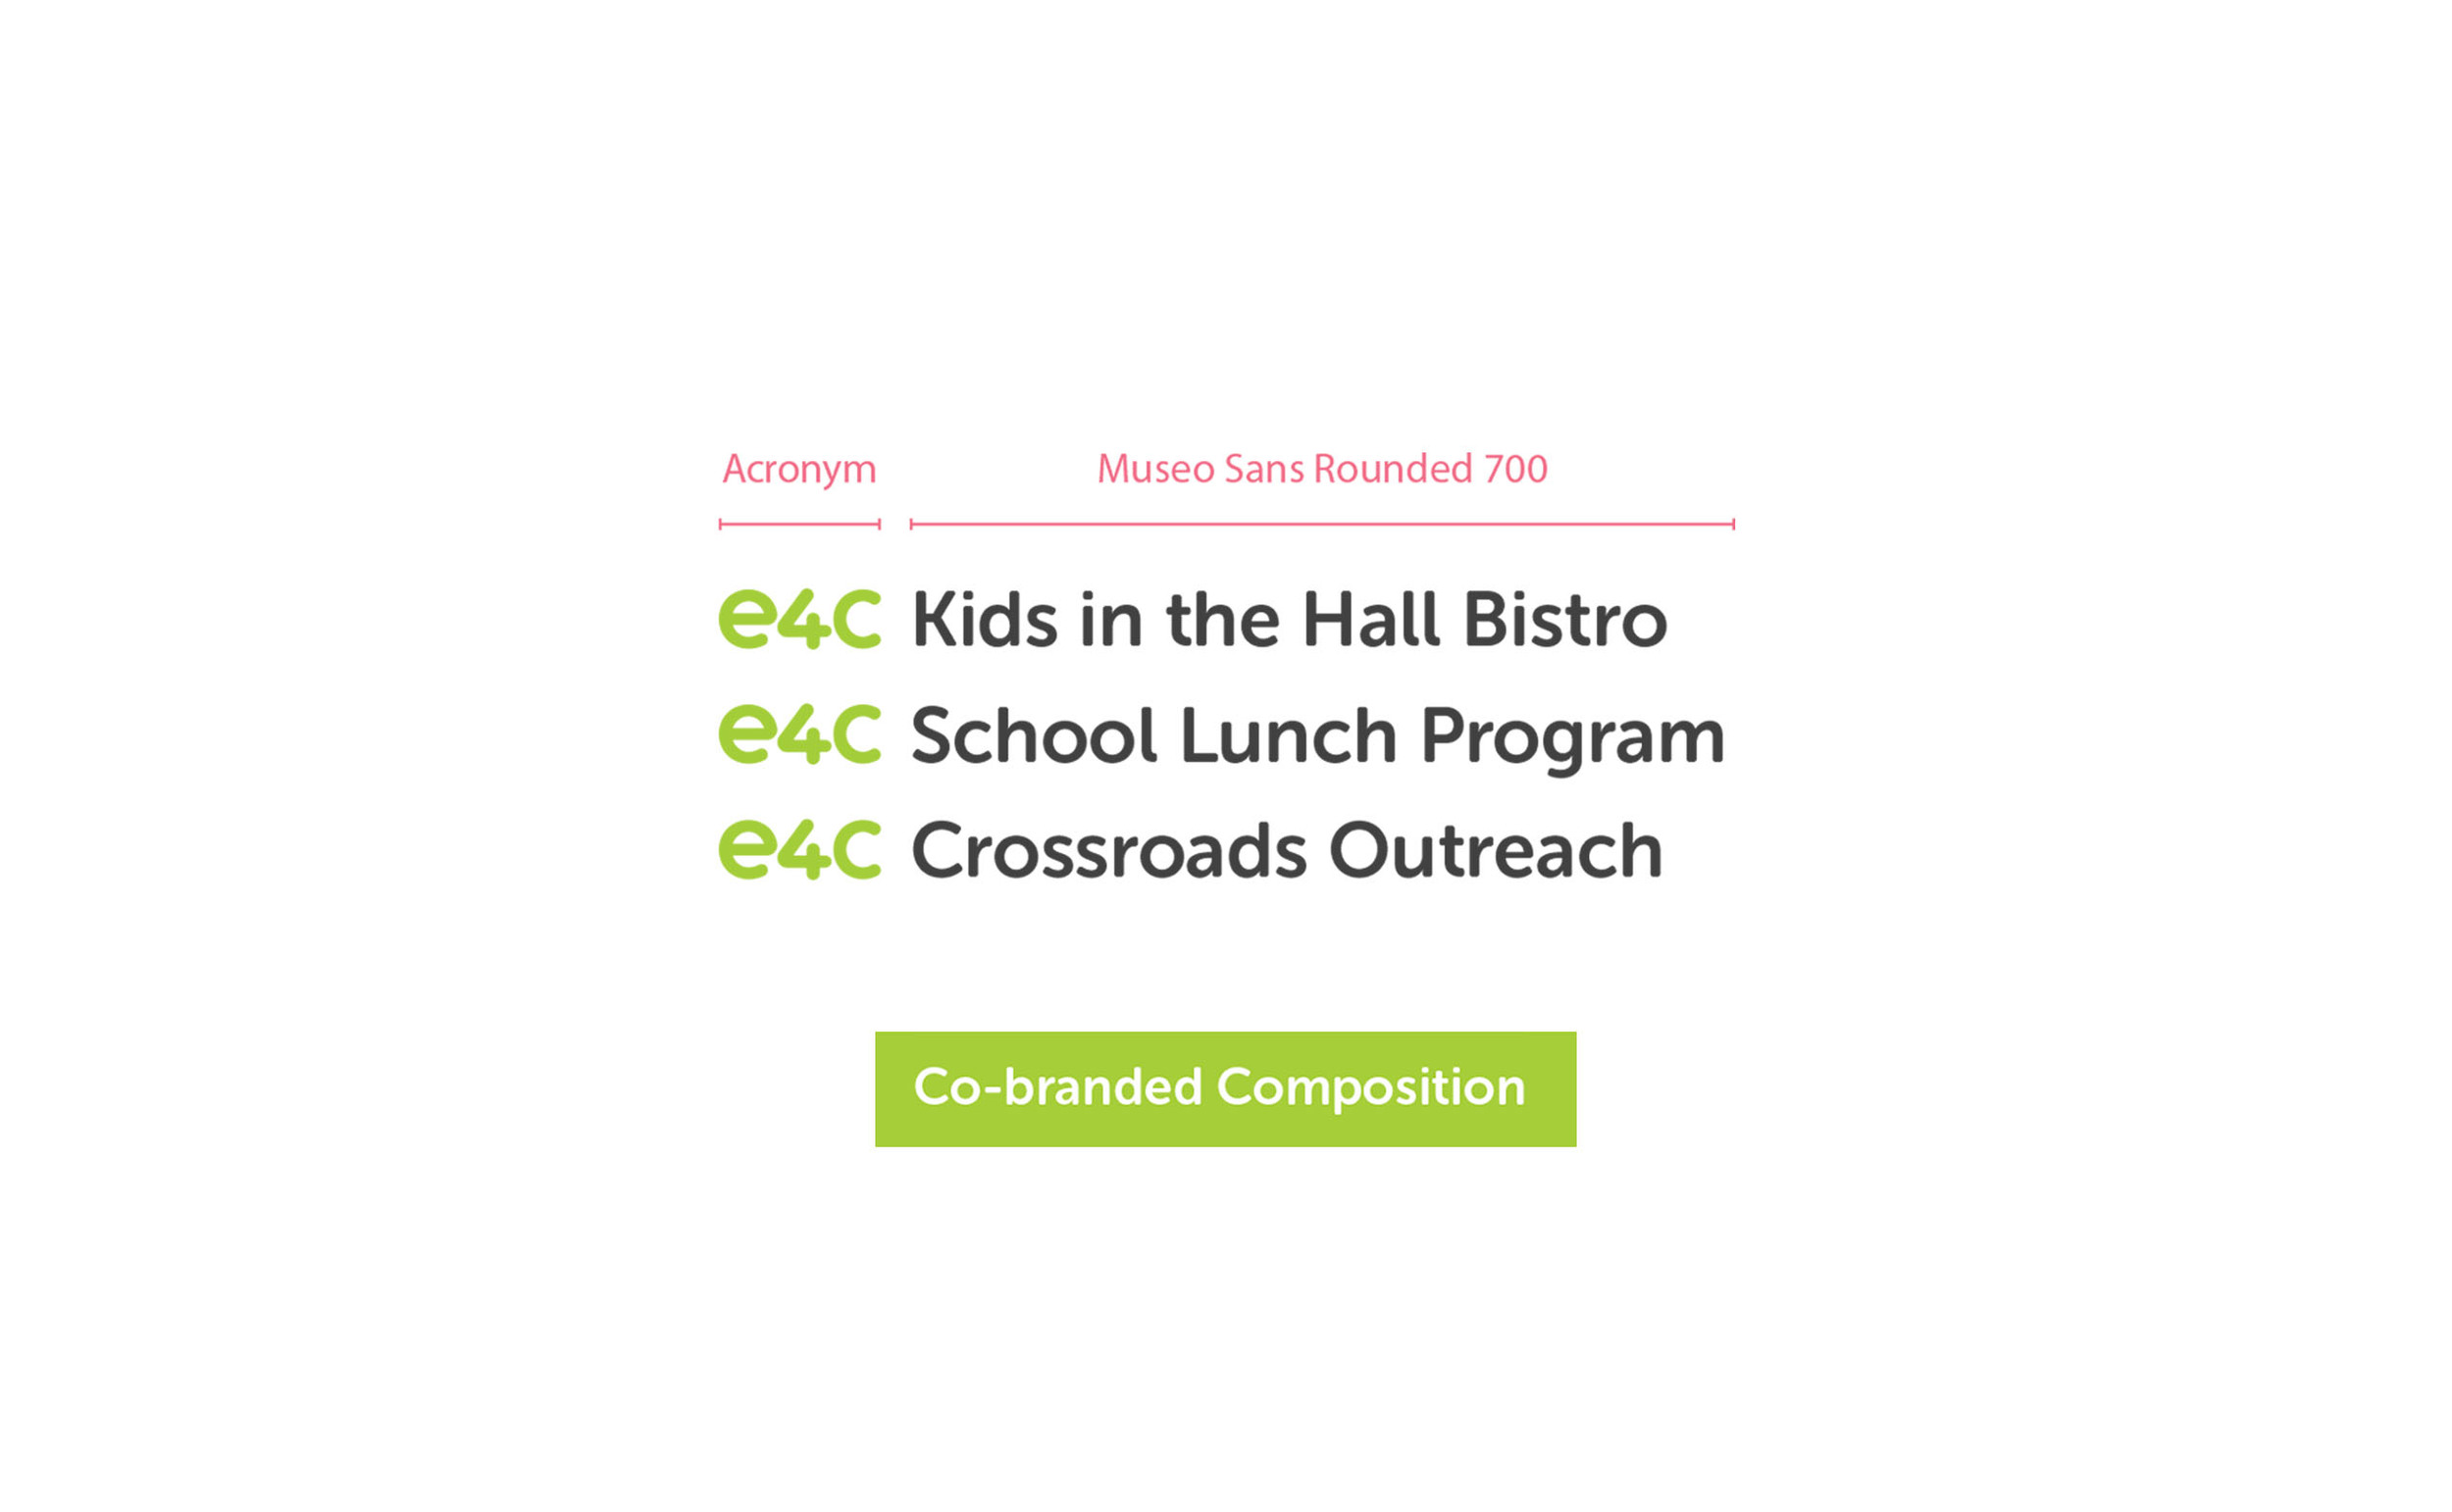 Co-brands:   e4c's number of programs should be represented as 'e4c program name'. Examples: e4c Kids in the Hall Bistro, e4c School Lunch Program, e4c Crossroads Outreach etc.